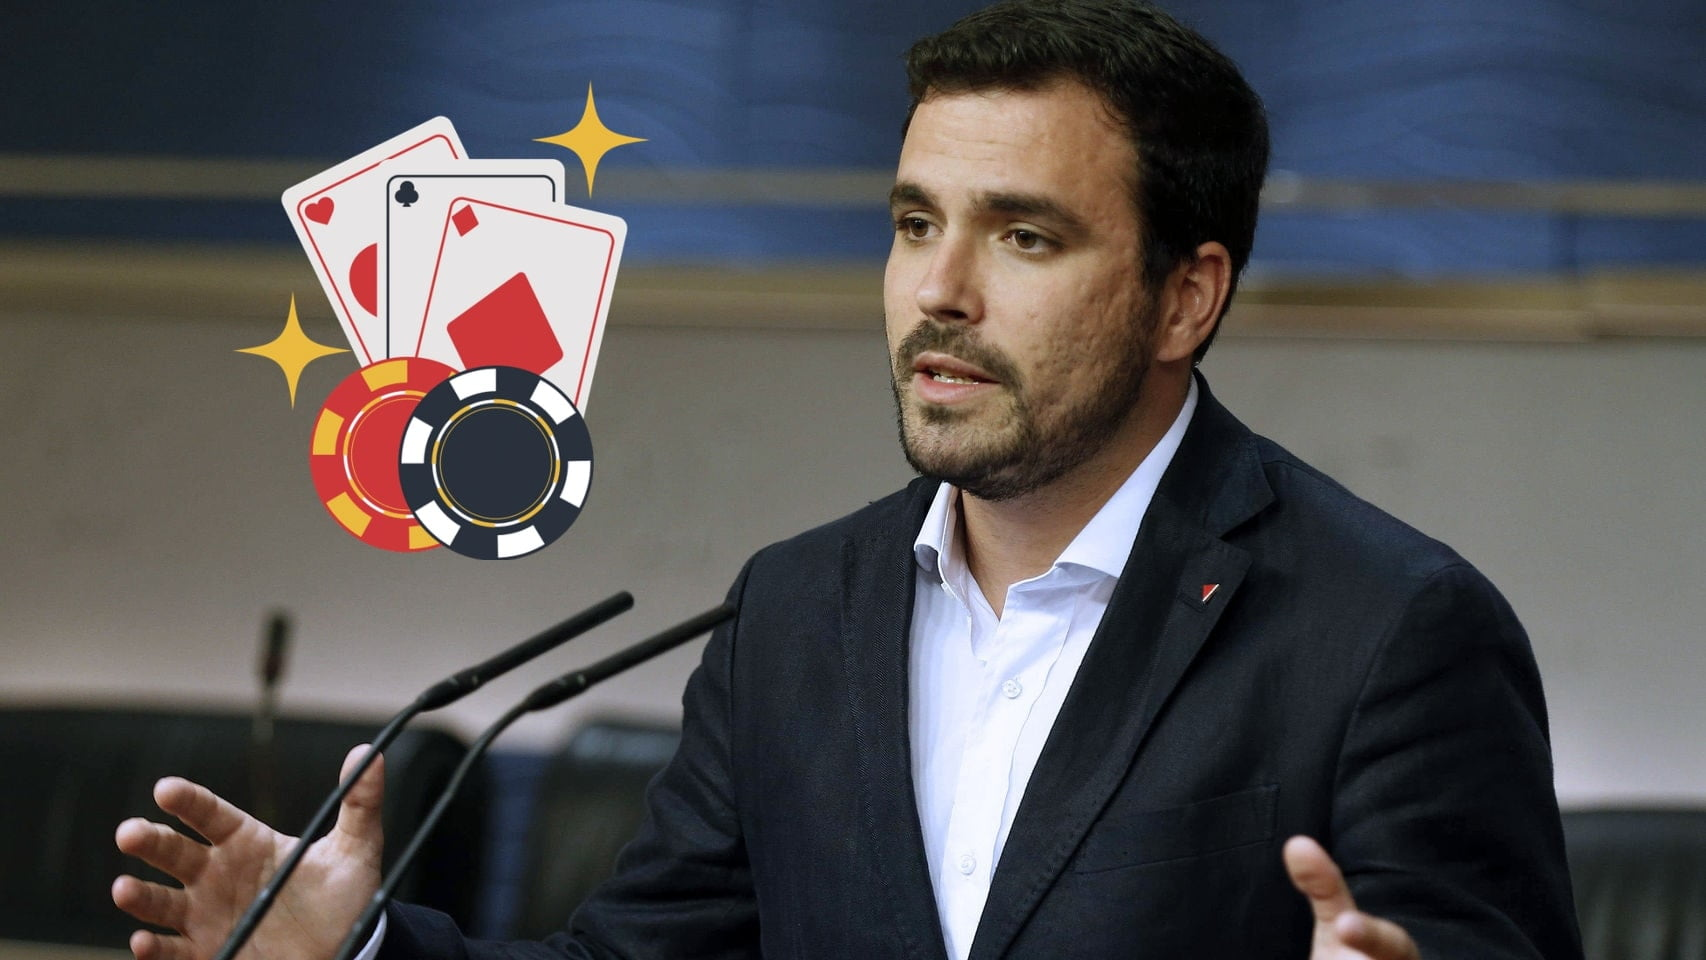 Spain To Push For Enforced Near-Total Ban Of Gambling Ads By October.